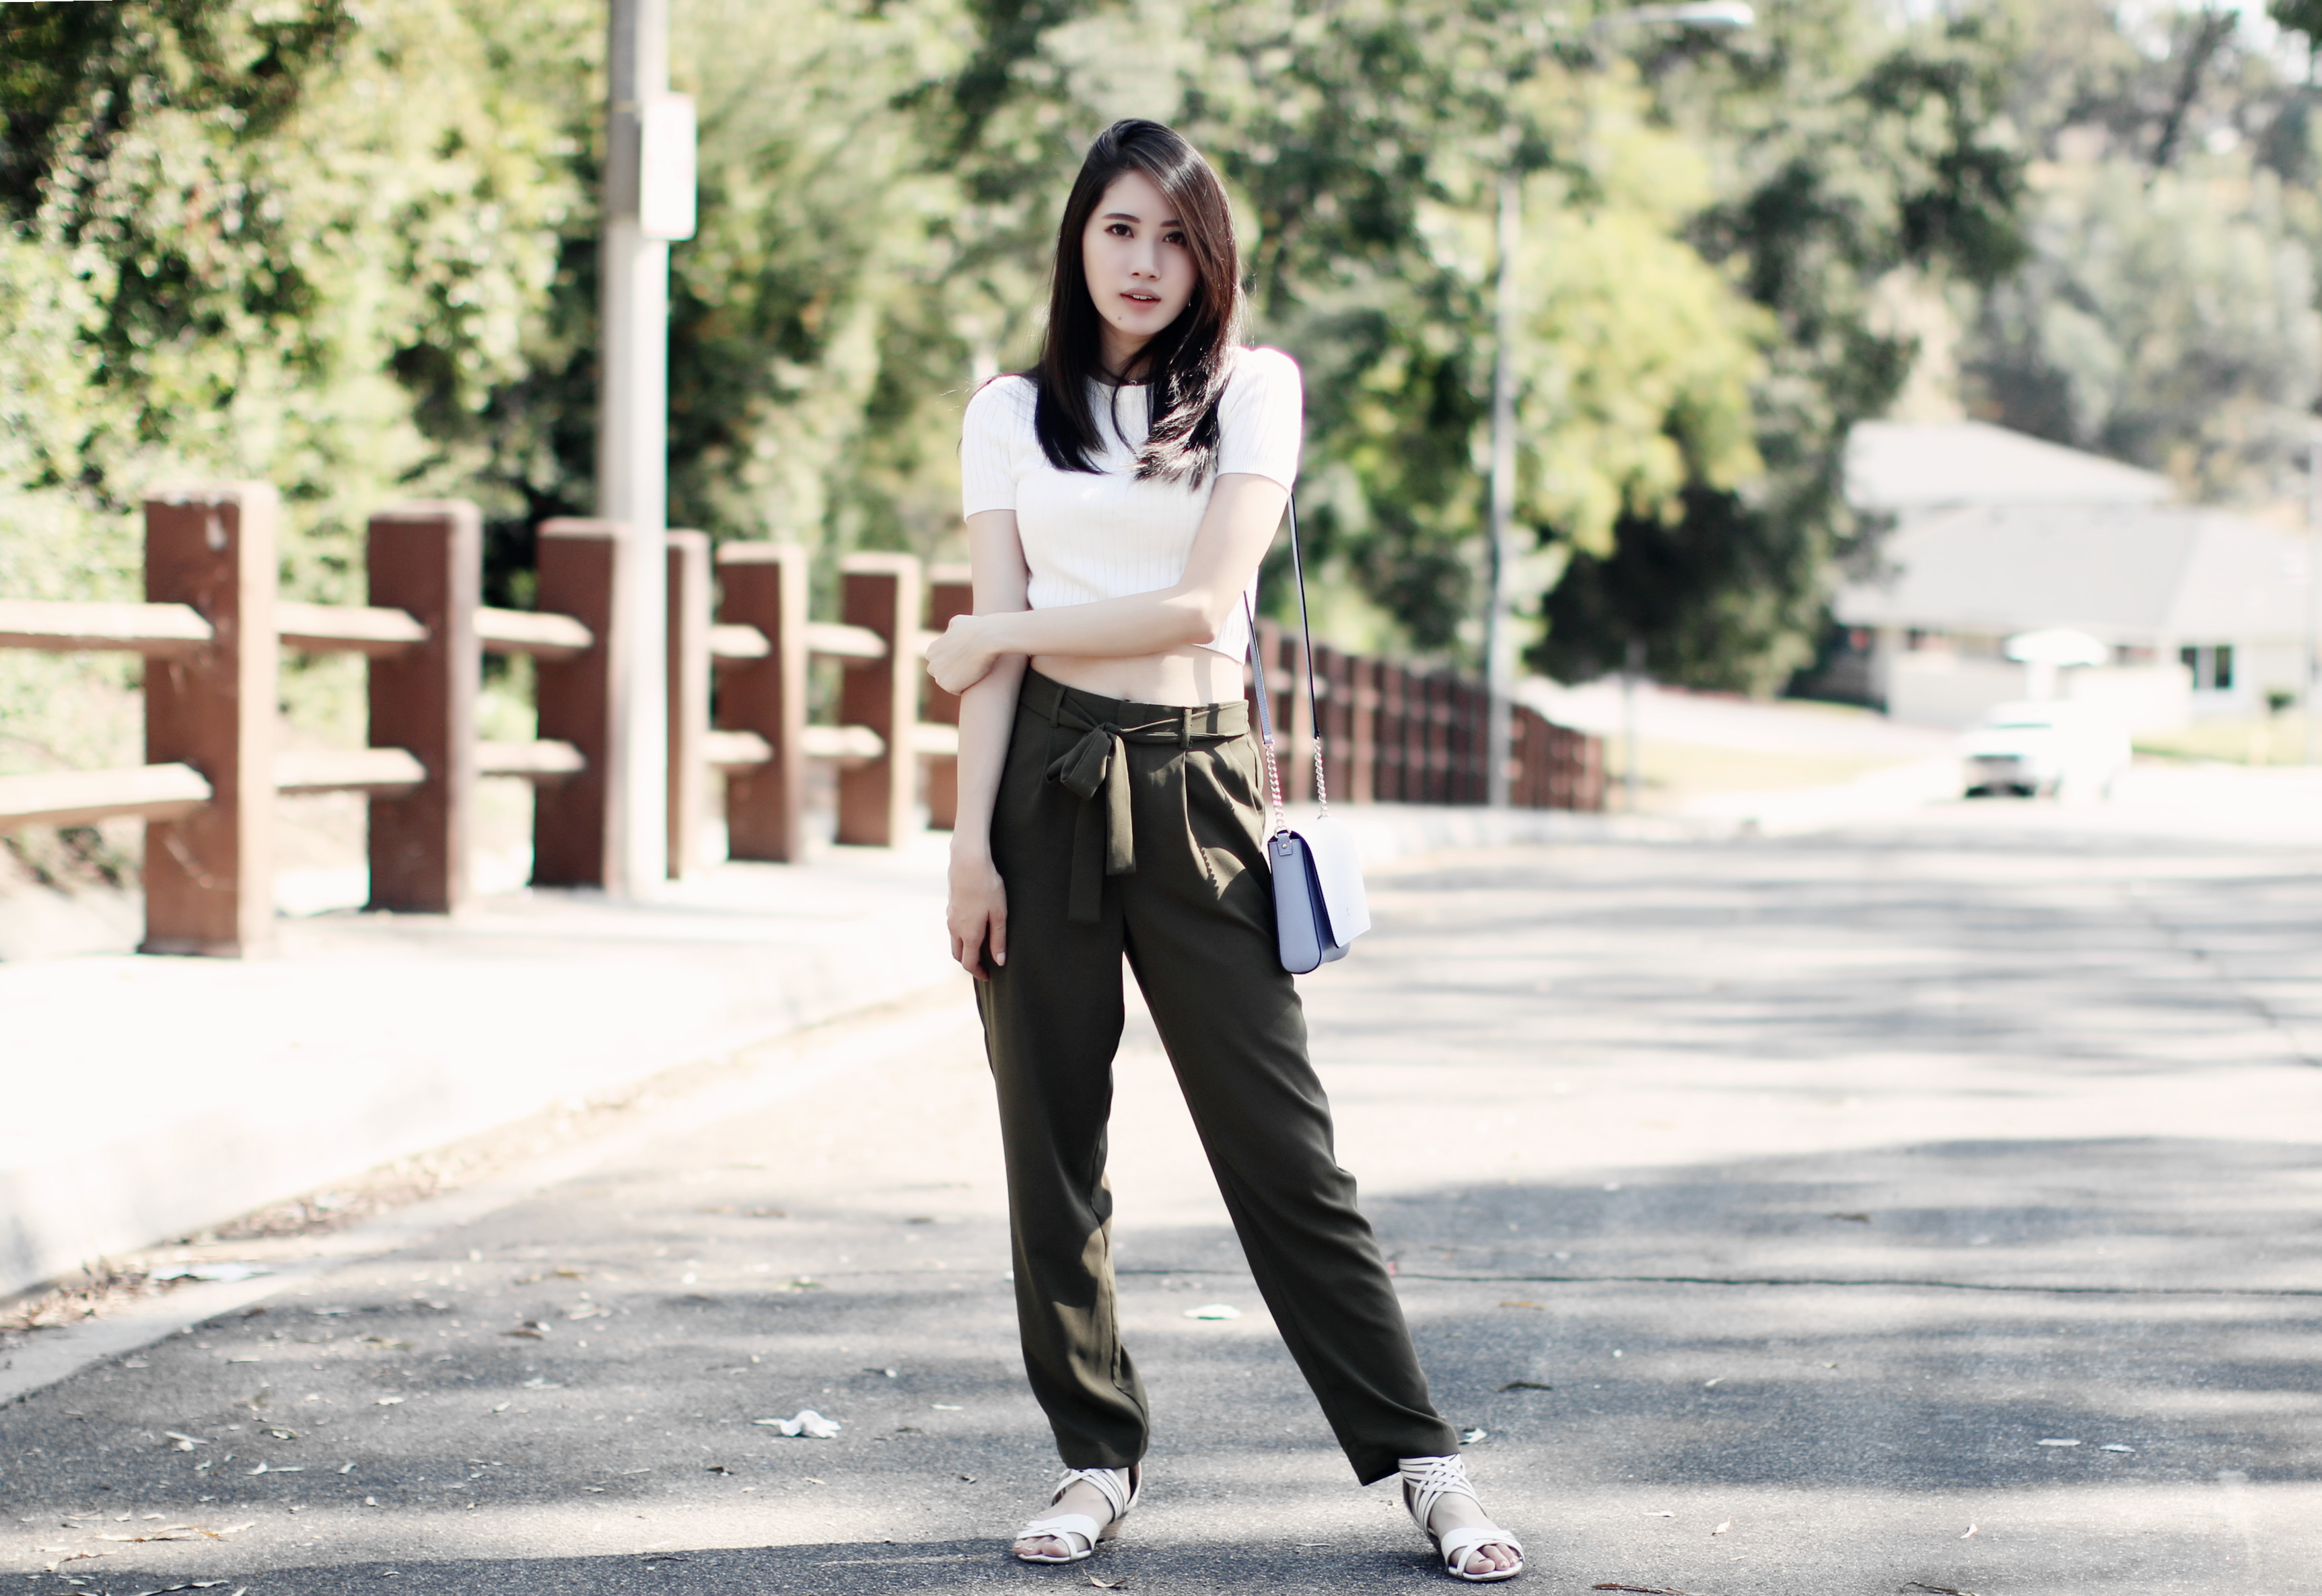 3452-ootd-fashion-style-outfitoftheday-wiwt-streetstyle-menswear-forever21-f21xme-trousers-elizabeeetht-clothestoyouuu